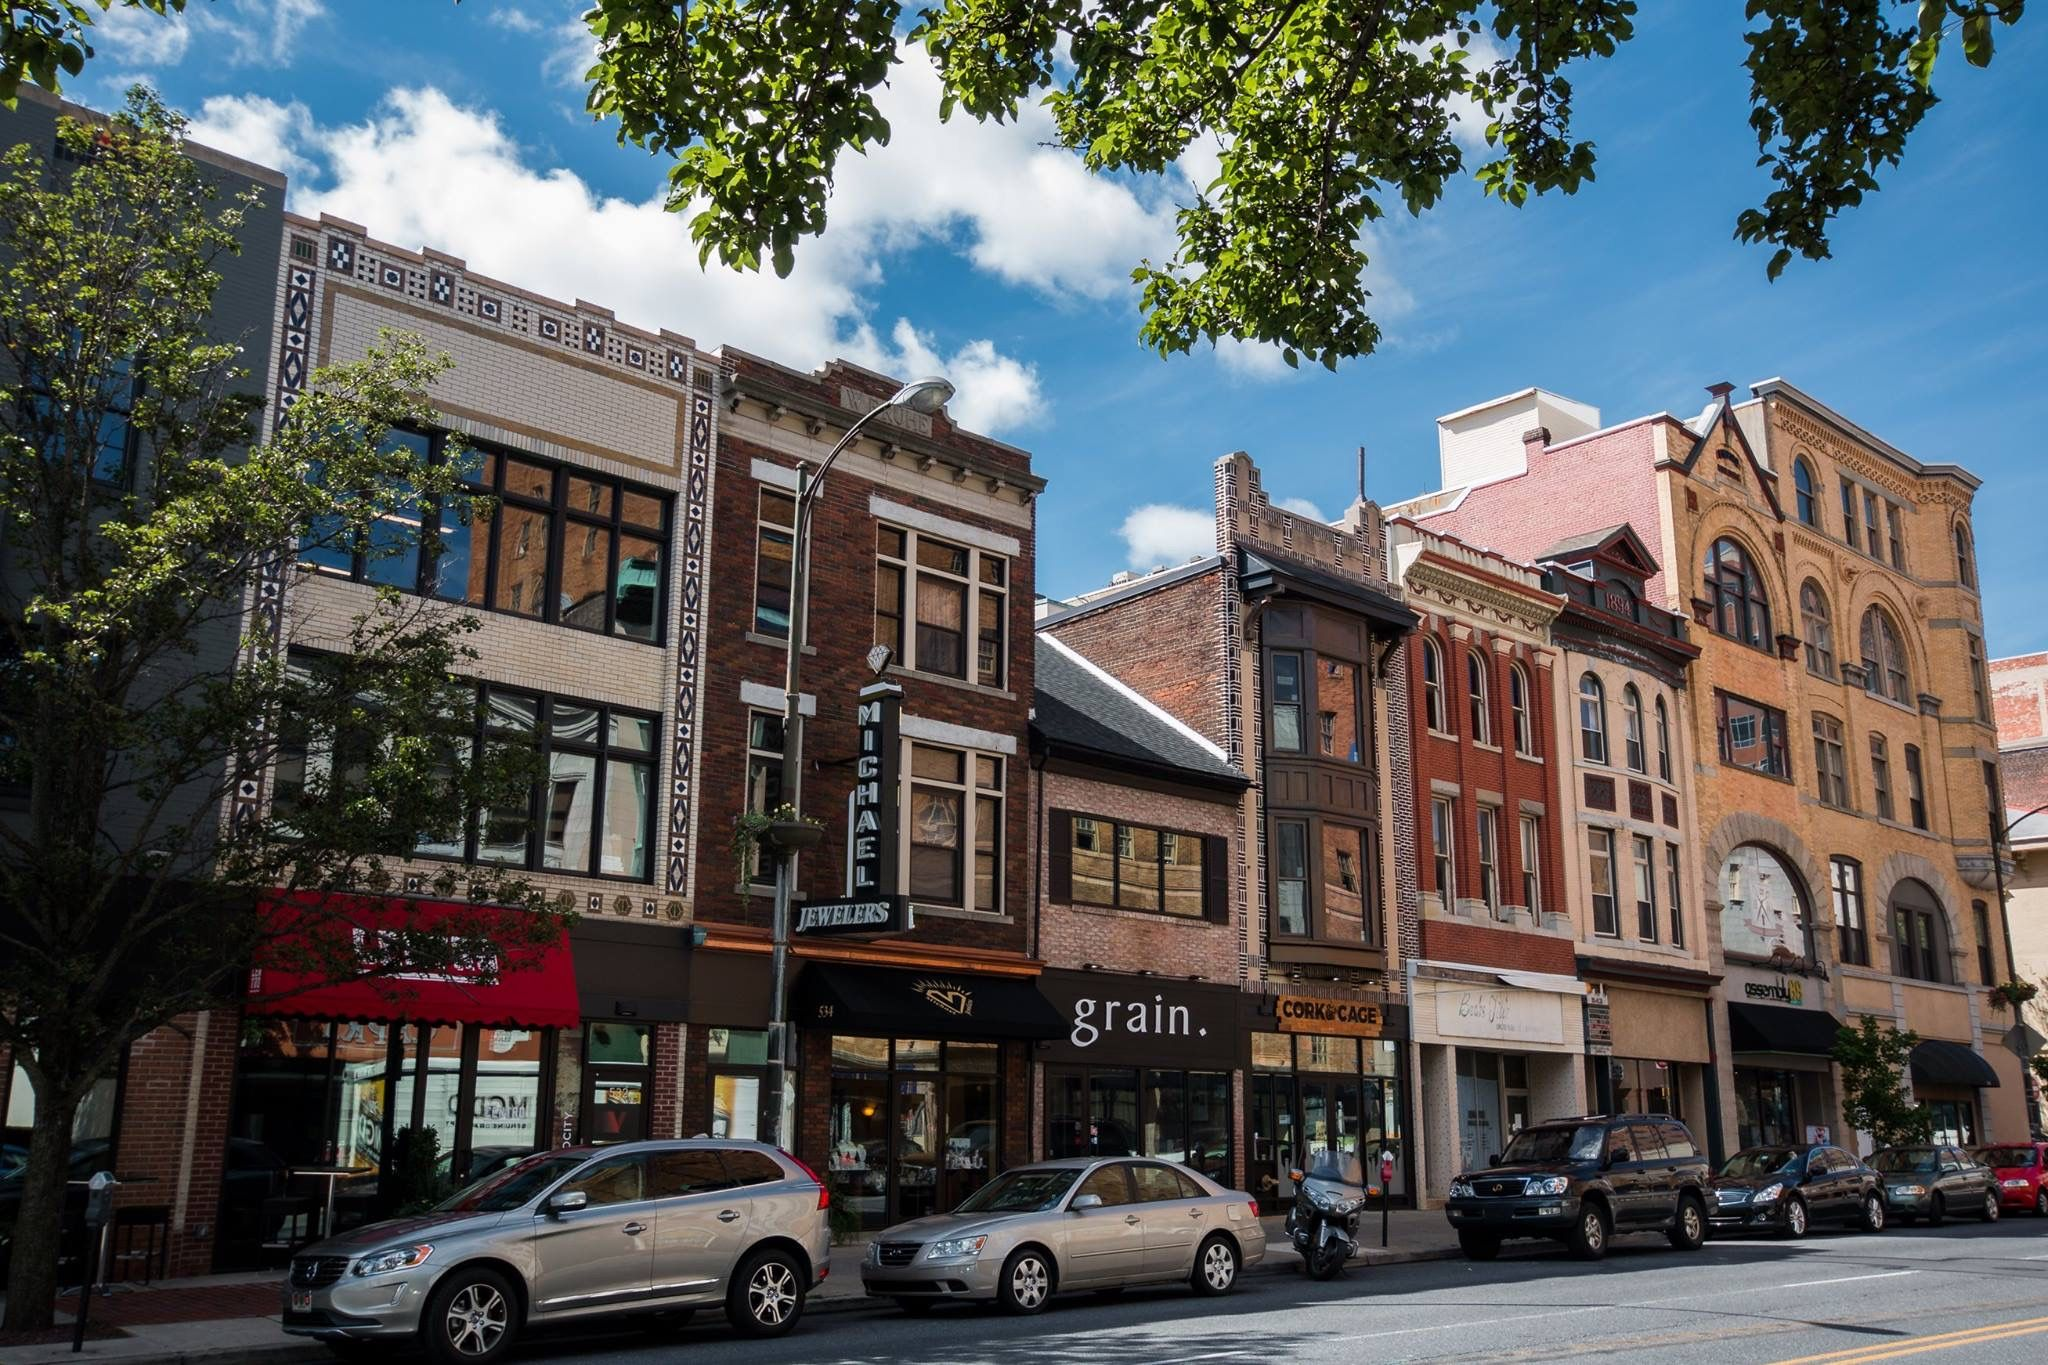 Uncovering PA Downtown Allentown, Pennsylvania, is quite